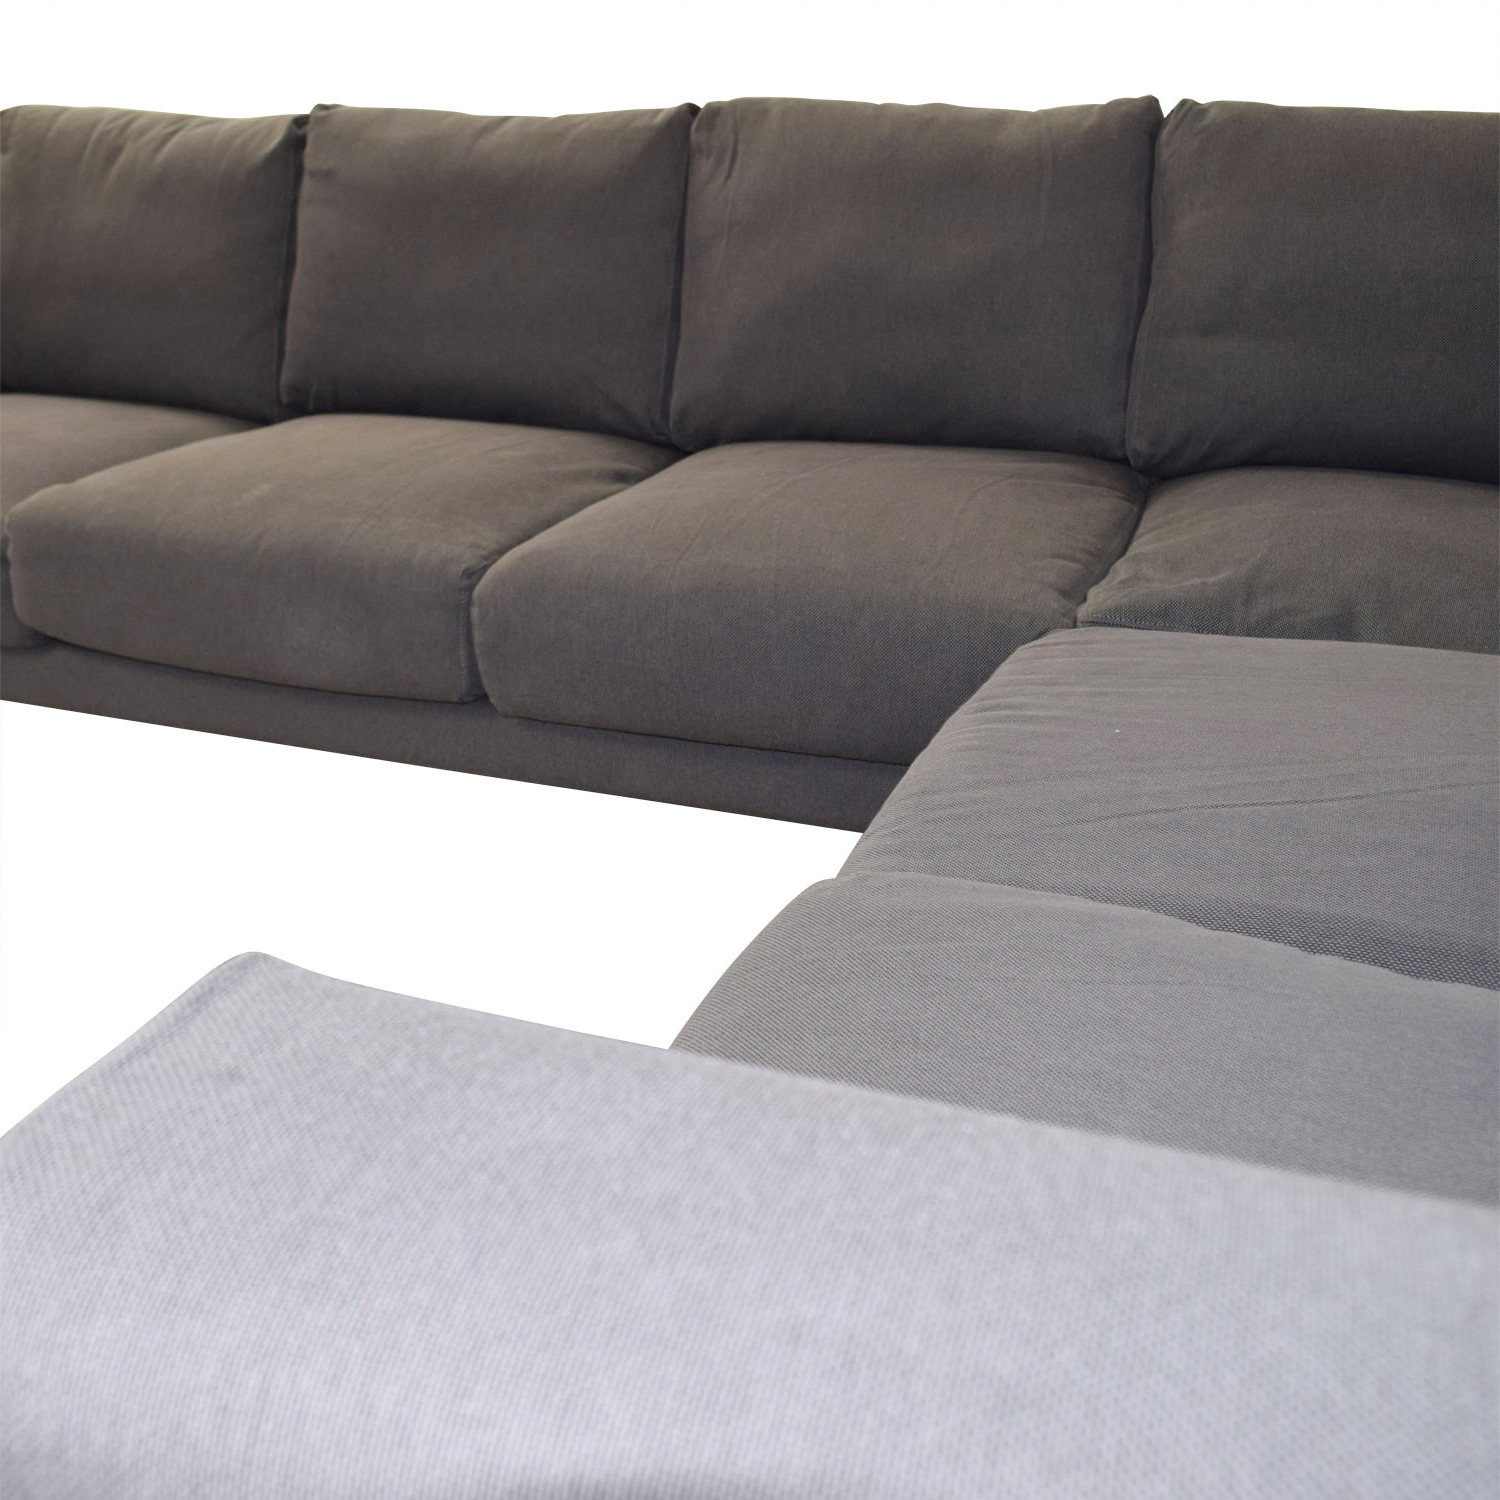 [%53% Off – Ikea Ikea Norsborg Grey L Shaped Sectional / Sofas For Most Current Owego L Shaped Sectional Sofas Owego L Shaped Sectional Sofas Inside Widely Used 53% Off – Ikea Ikea Norsborg Grey L Shaped Sectional / Sofas Most Recently Released Owego L Shaped Sectional Sofas Throughout 53% Off – Ikea Ikea Norsborg Grey L Shaped Sectional / Sofas Recent 53% Off – Ikea Ikea Norsborg Grey L Shaped Sectional / Sofas Pertaining To Owego L Shaped Sectional Sofas%] (View 18 of 25)